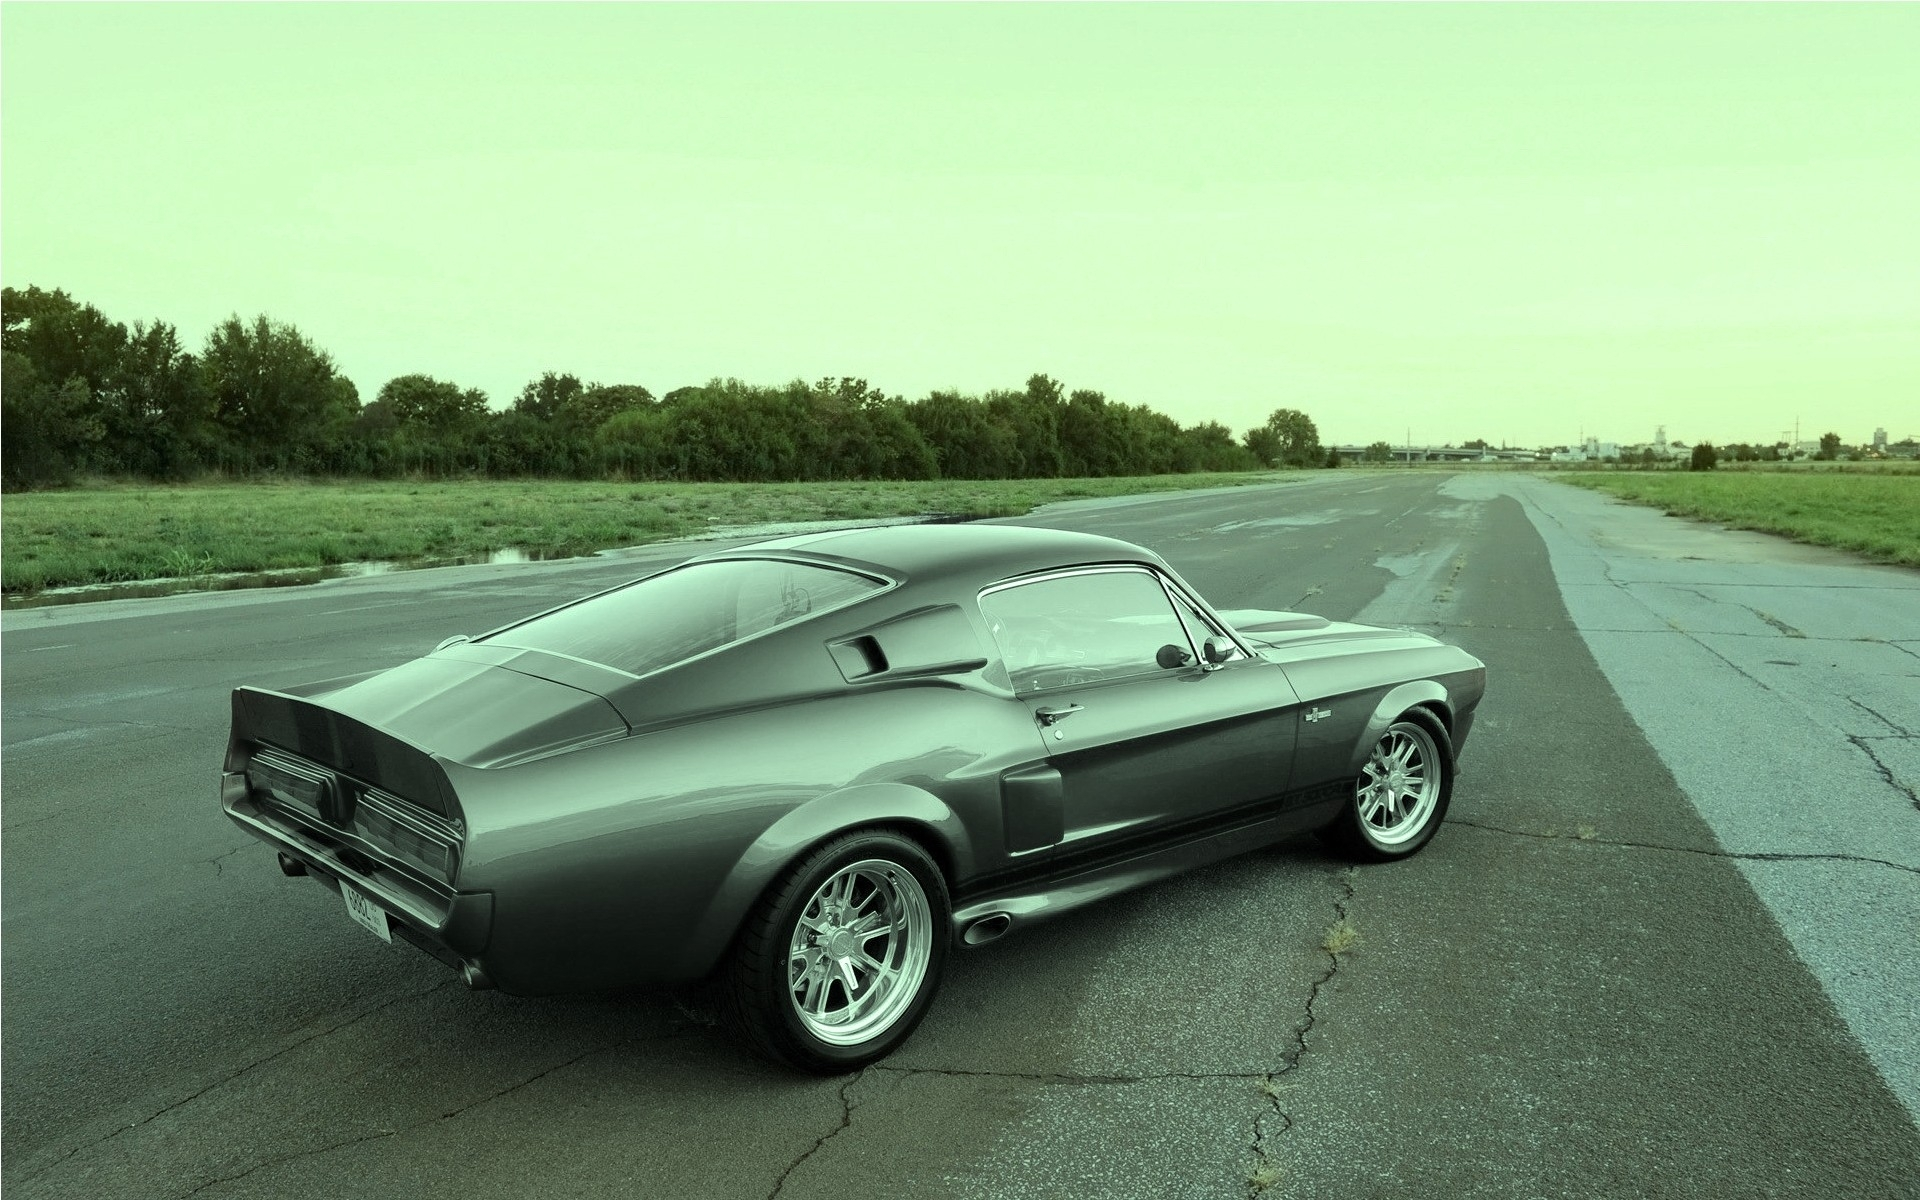 Ford muscle cars classic vehicles ford mustang automobiles wallpaper ...